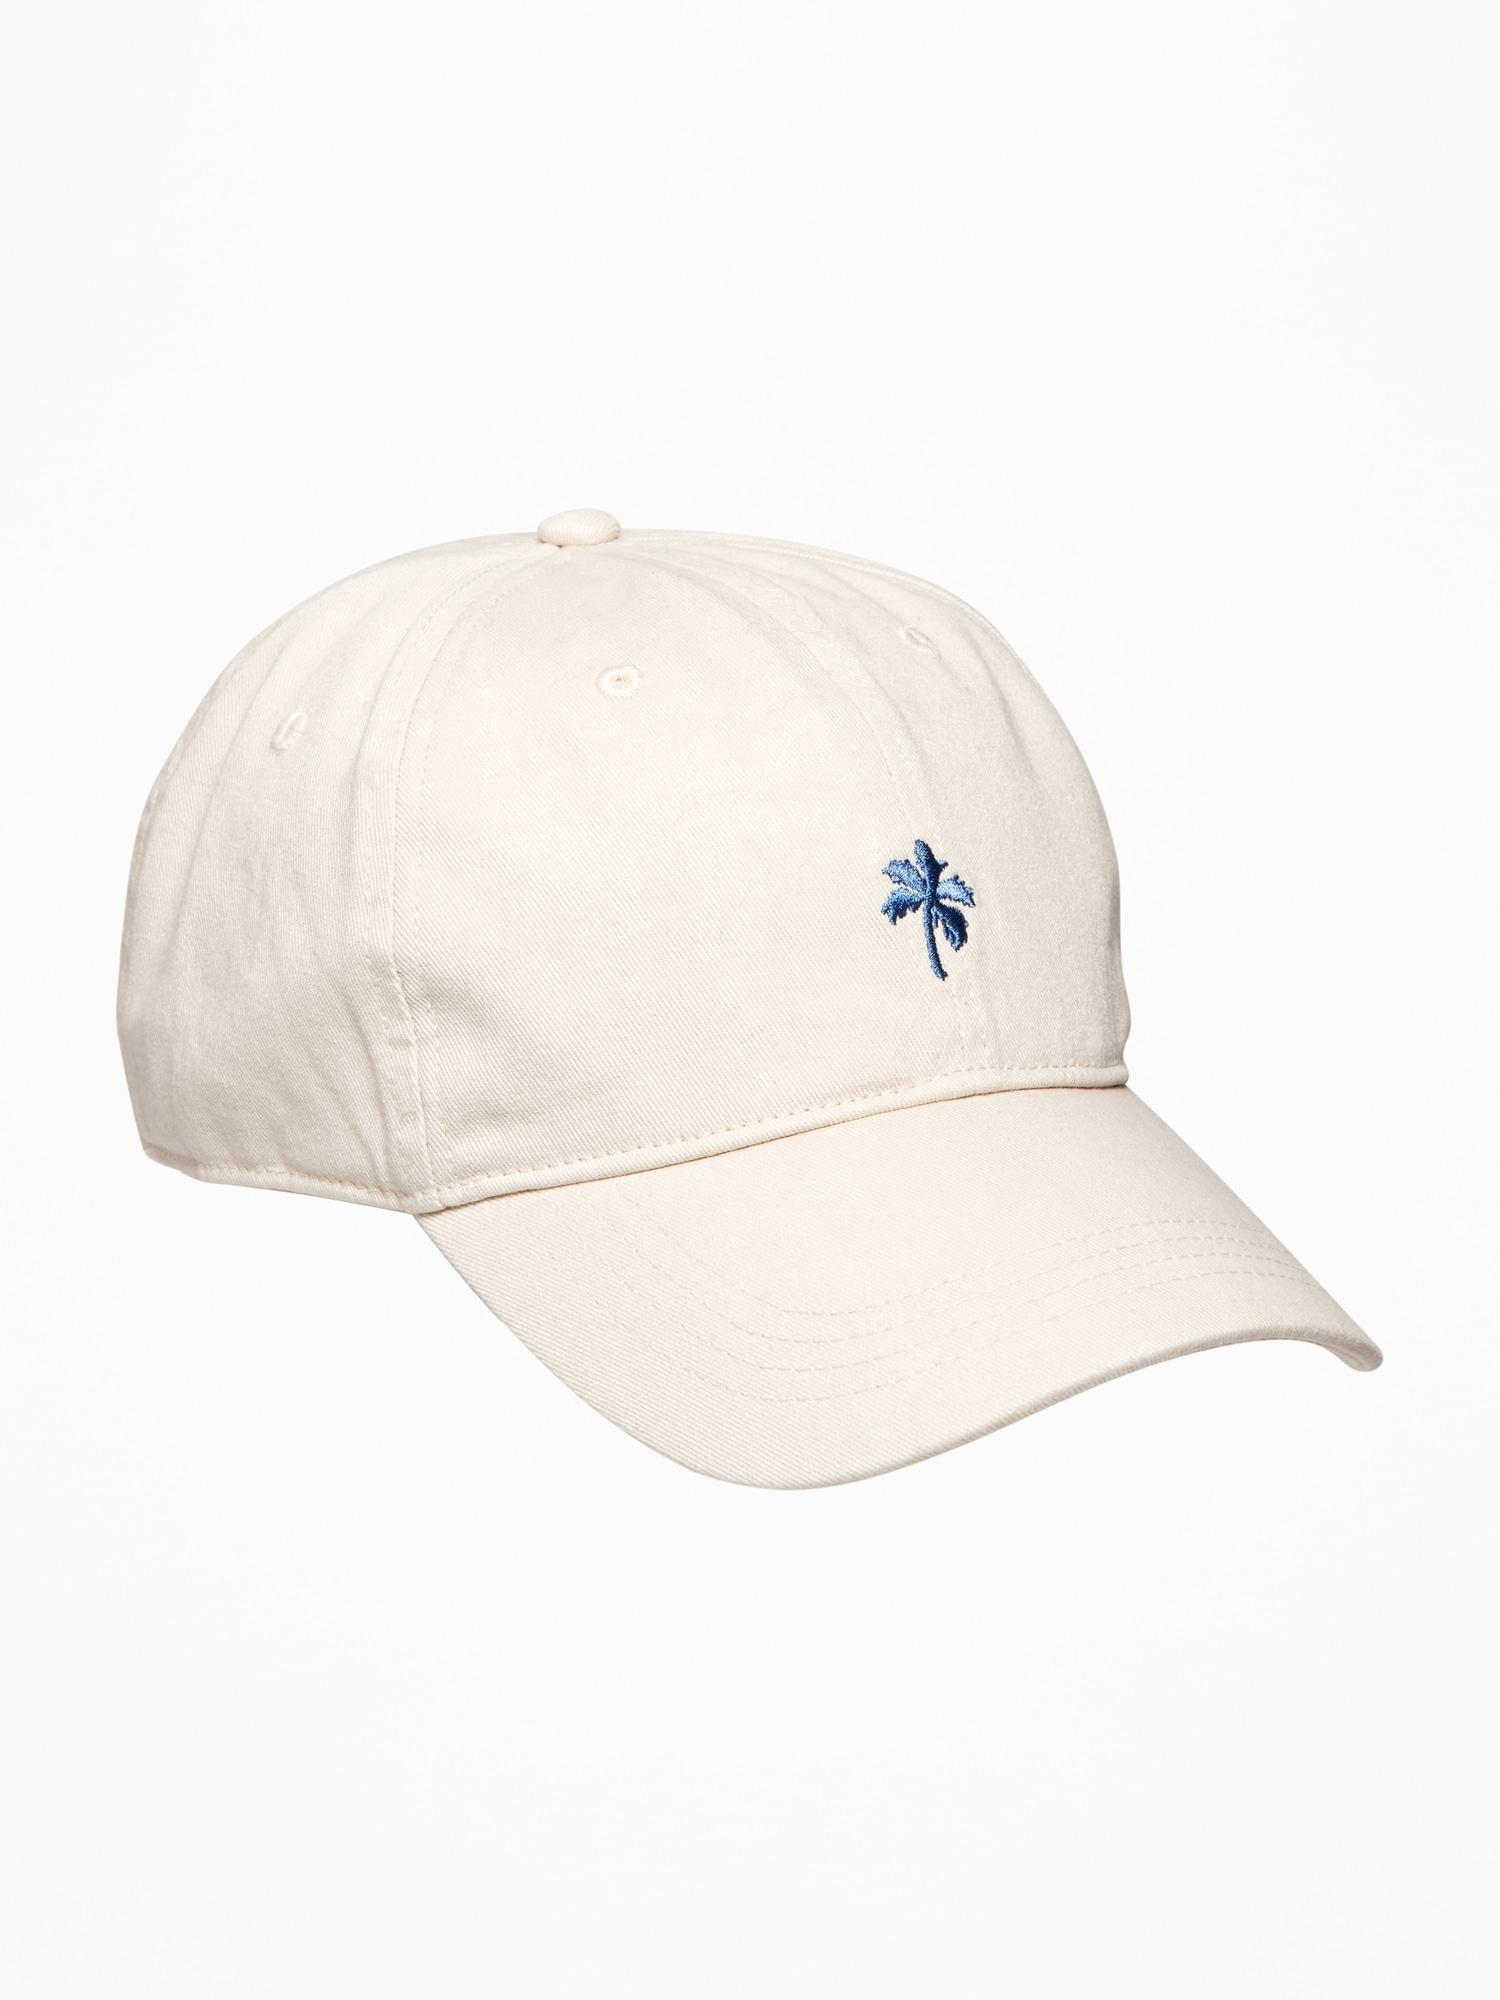 dcd6b0dcf8b Lyst - Old Navy Embroidered Graphic Twill Baseball Cap in White for Men